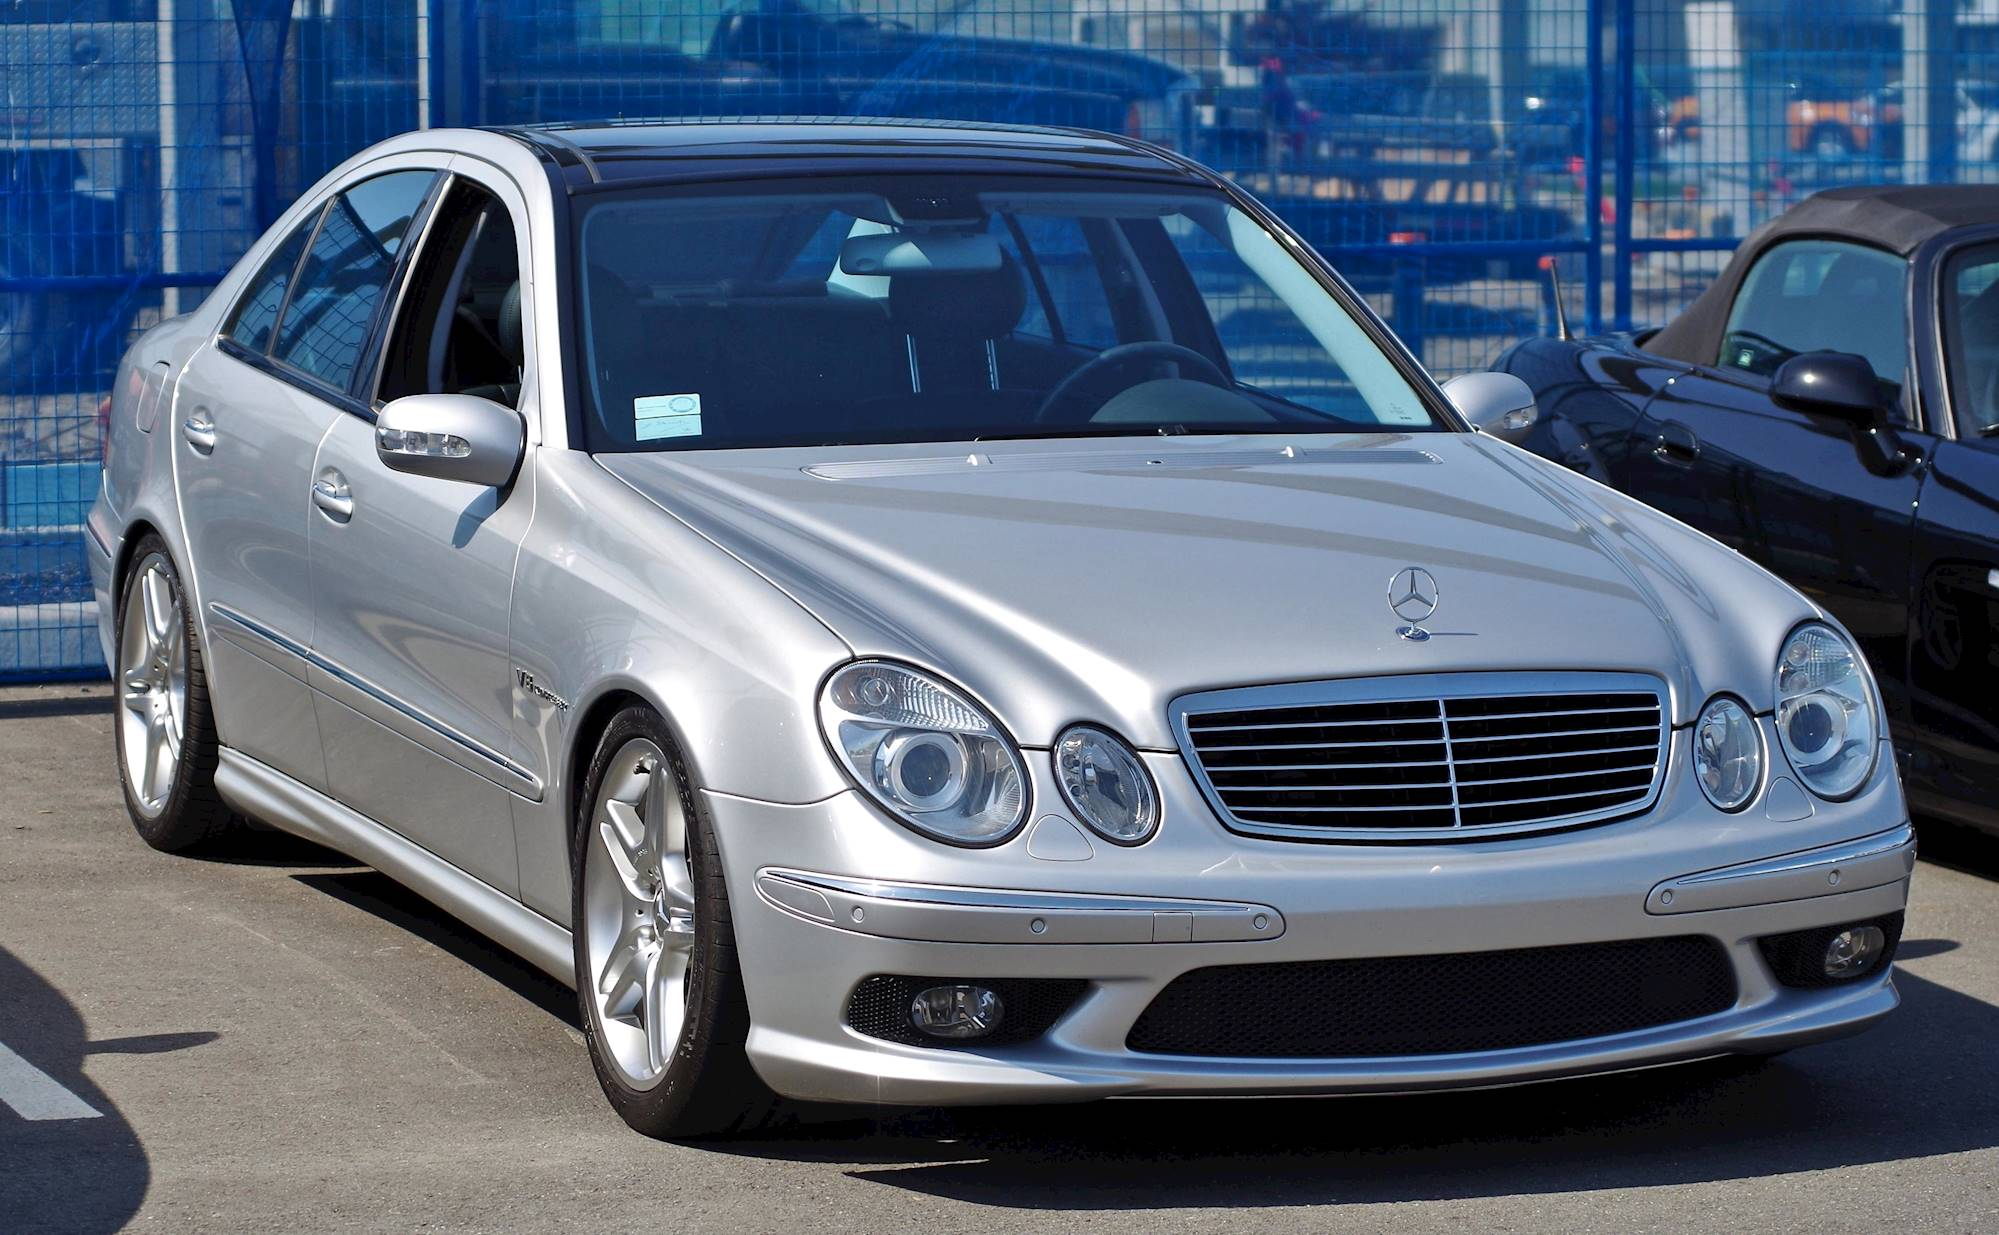 2004 Mercedes Benz E55 AMG Base 4dr Sedan 5 spd AMG Speed Shift w OD